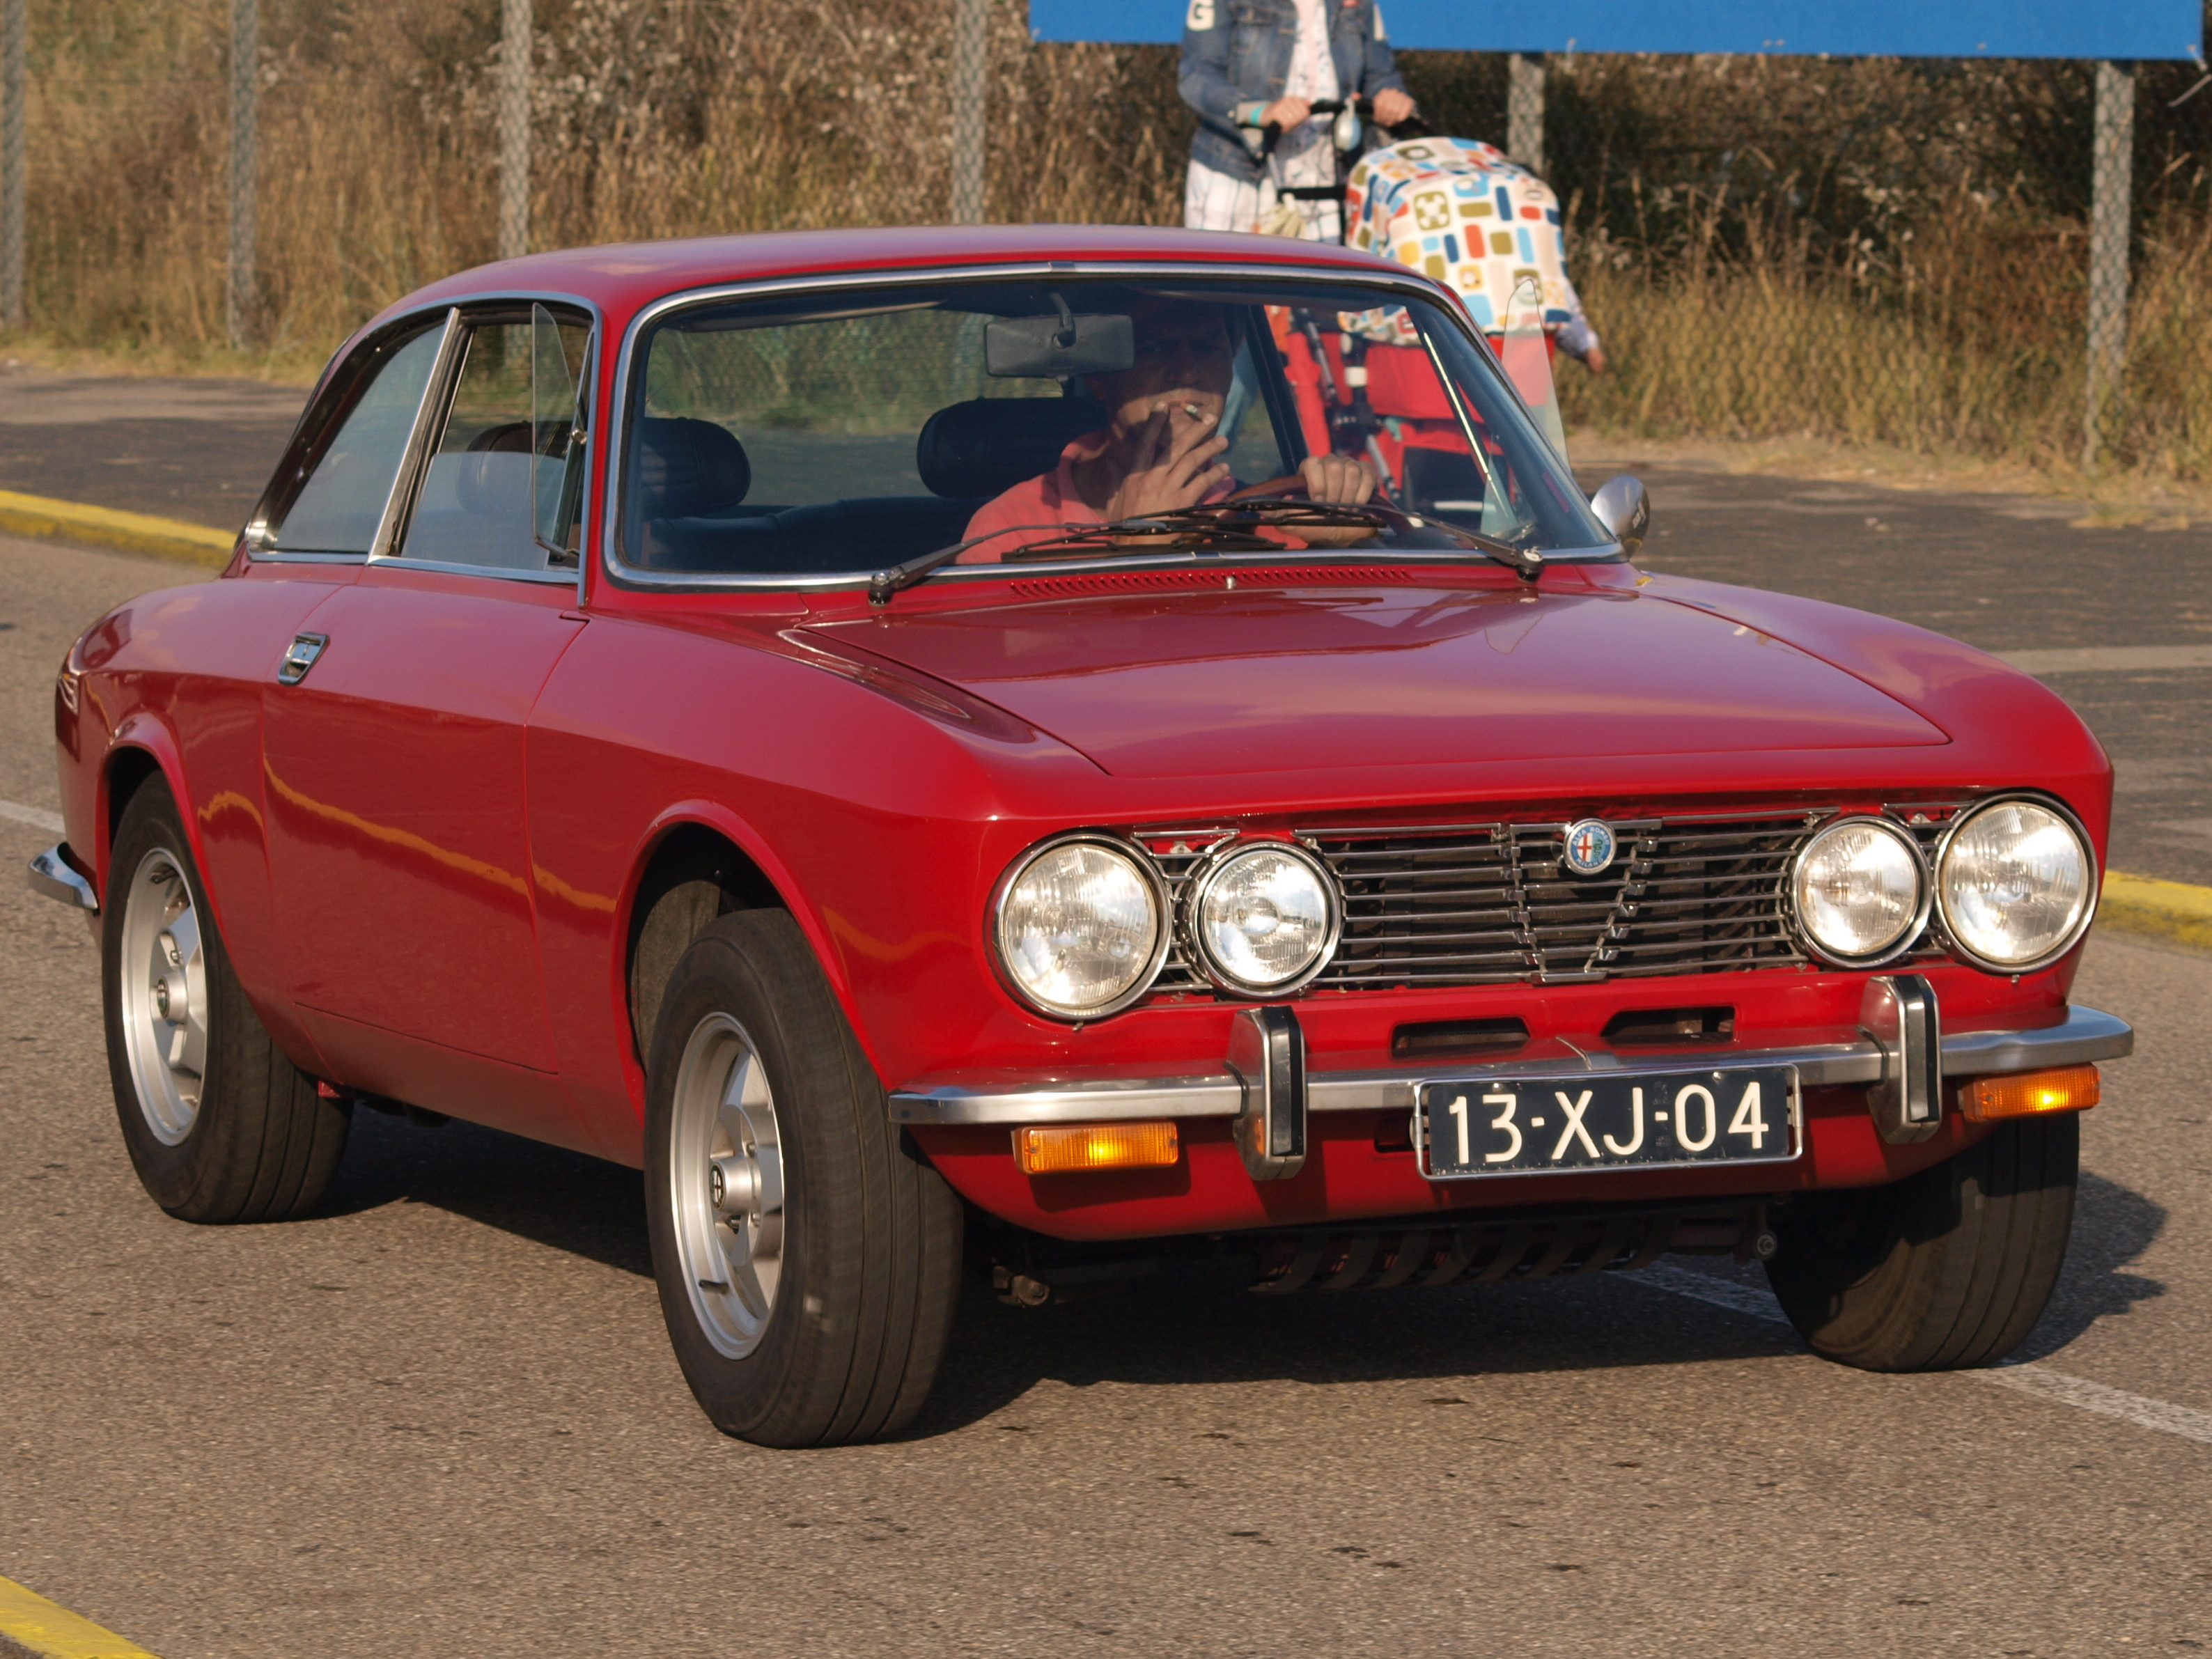 File Alfa Romeo 2000 GTV USA dutch licence registration 13 XJ 04 JPG